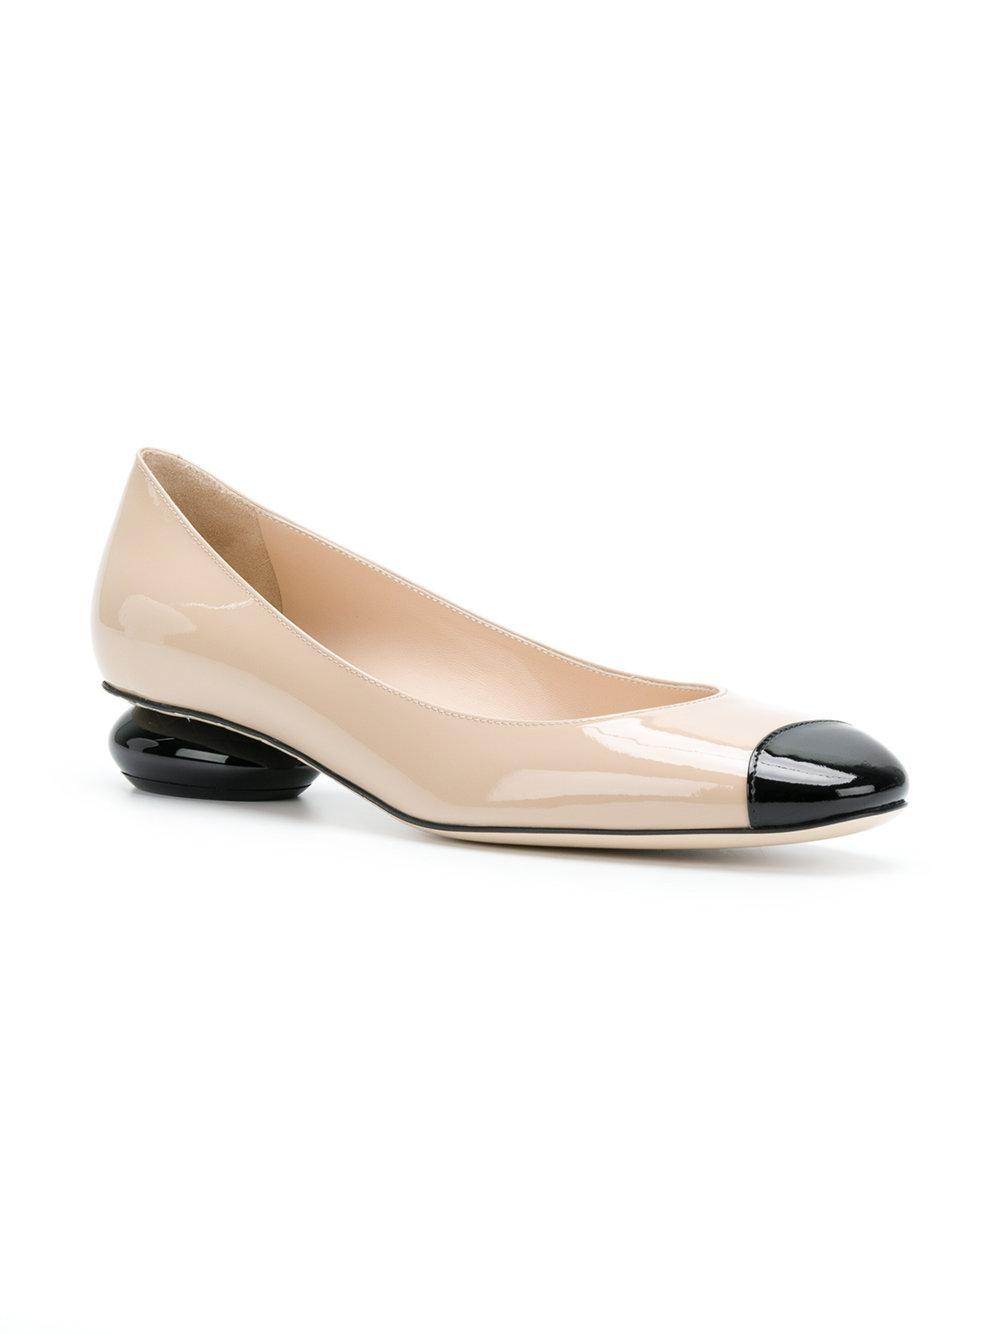 mink patent calf patent bette pump - Nude & Neutrals Bottega Veneta bP7yBJbD